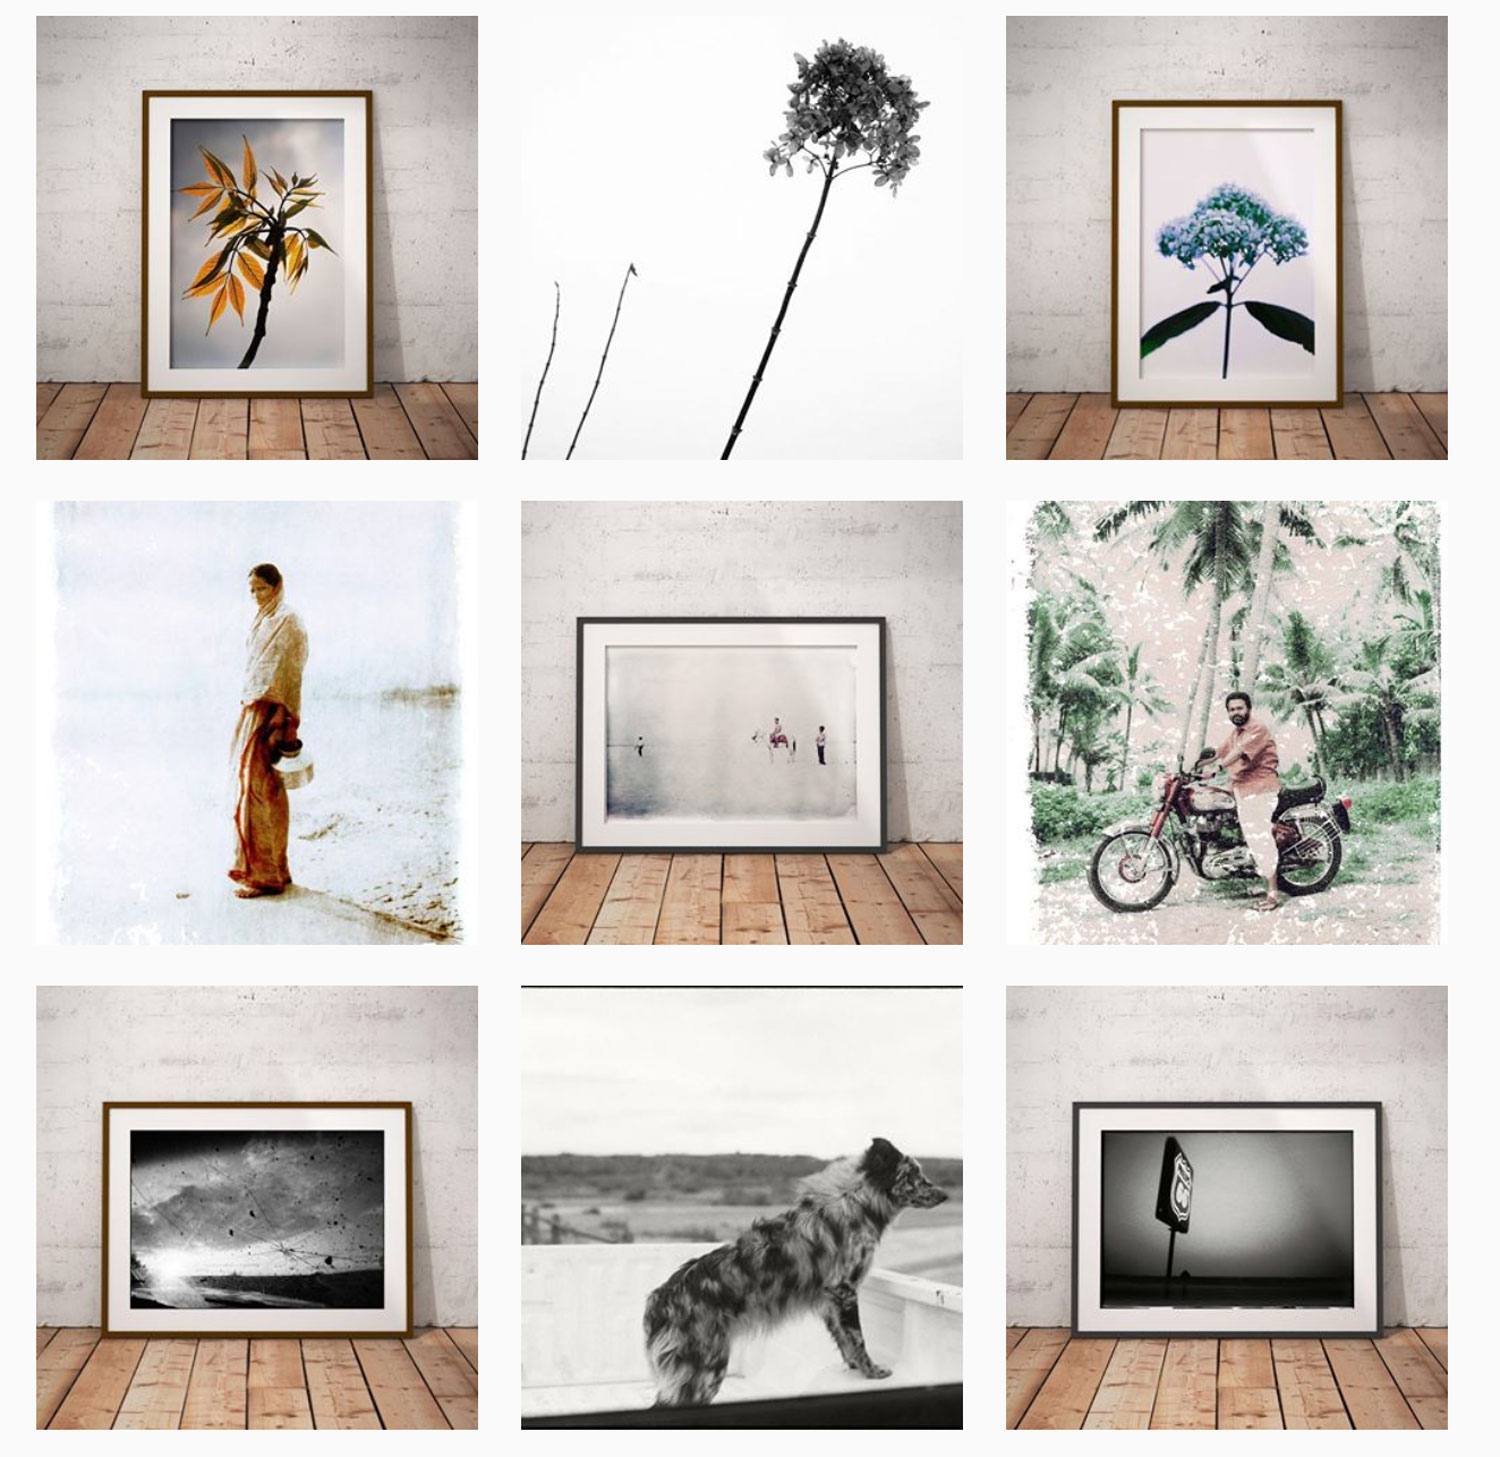 GALLERY-PHOTOGRAPHY_PRINTS: KEN SHUNG, OSKAR LANDI, CHRIS BARTLET